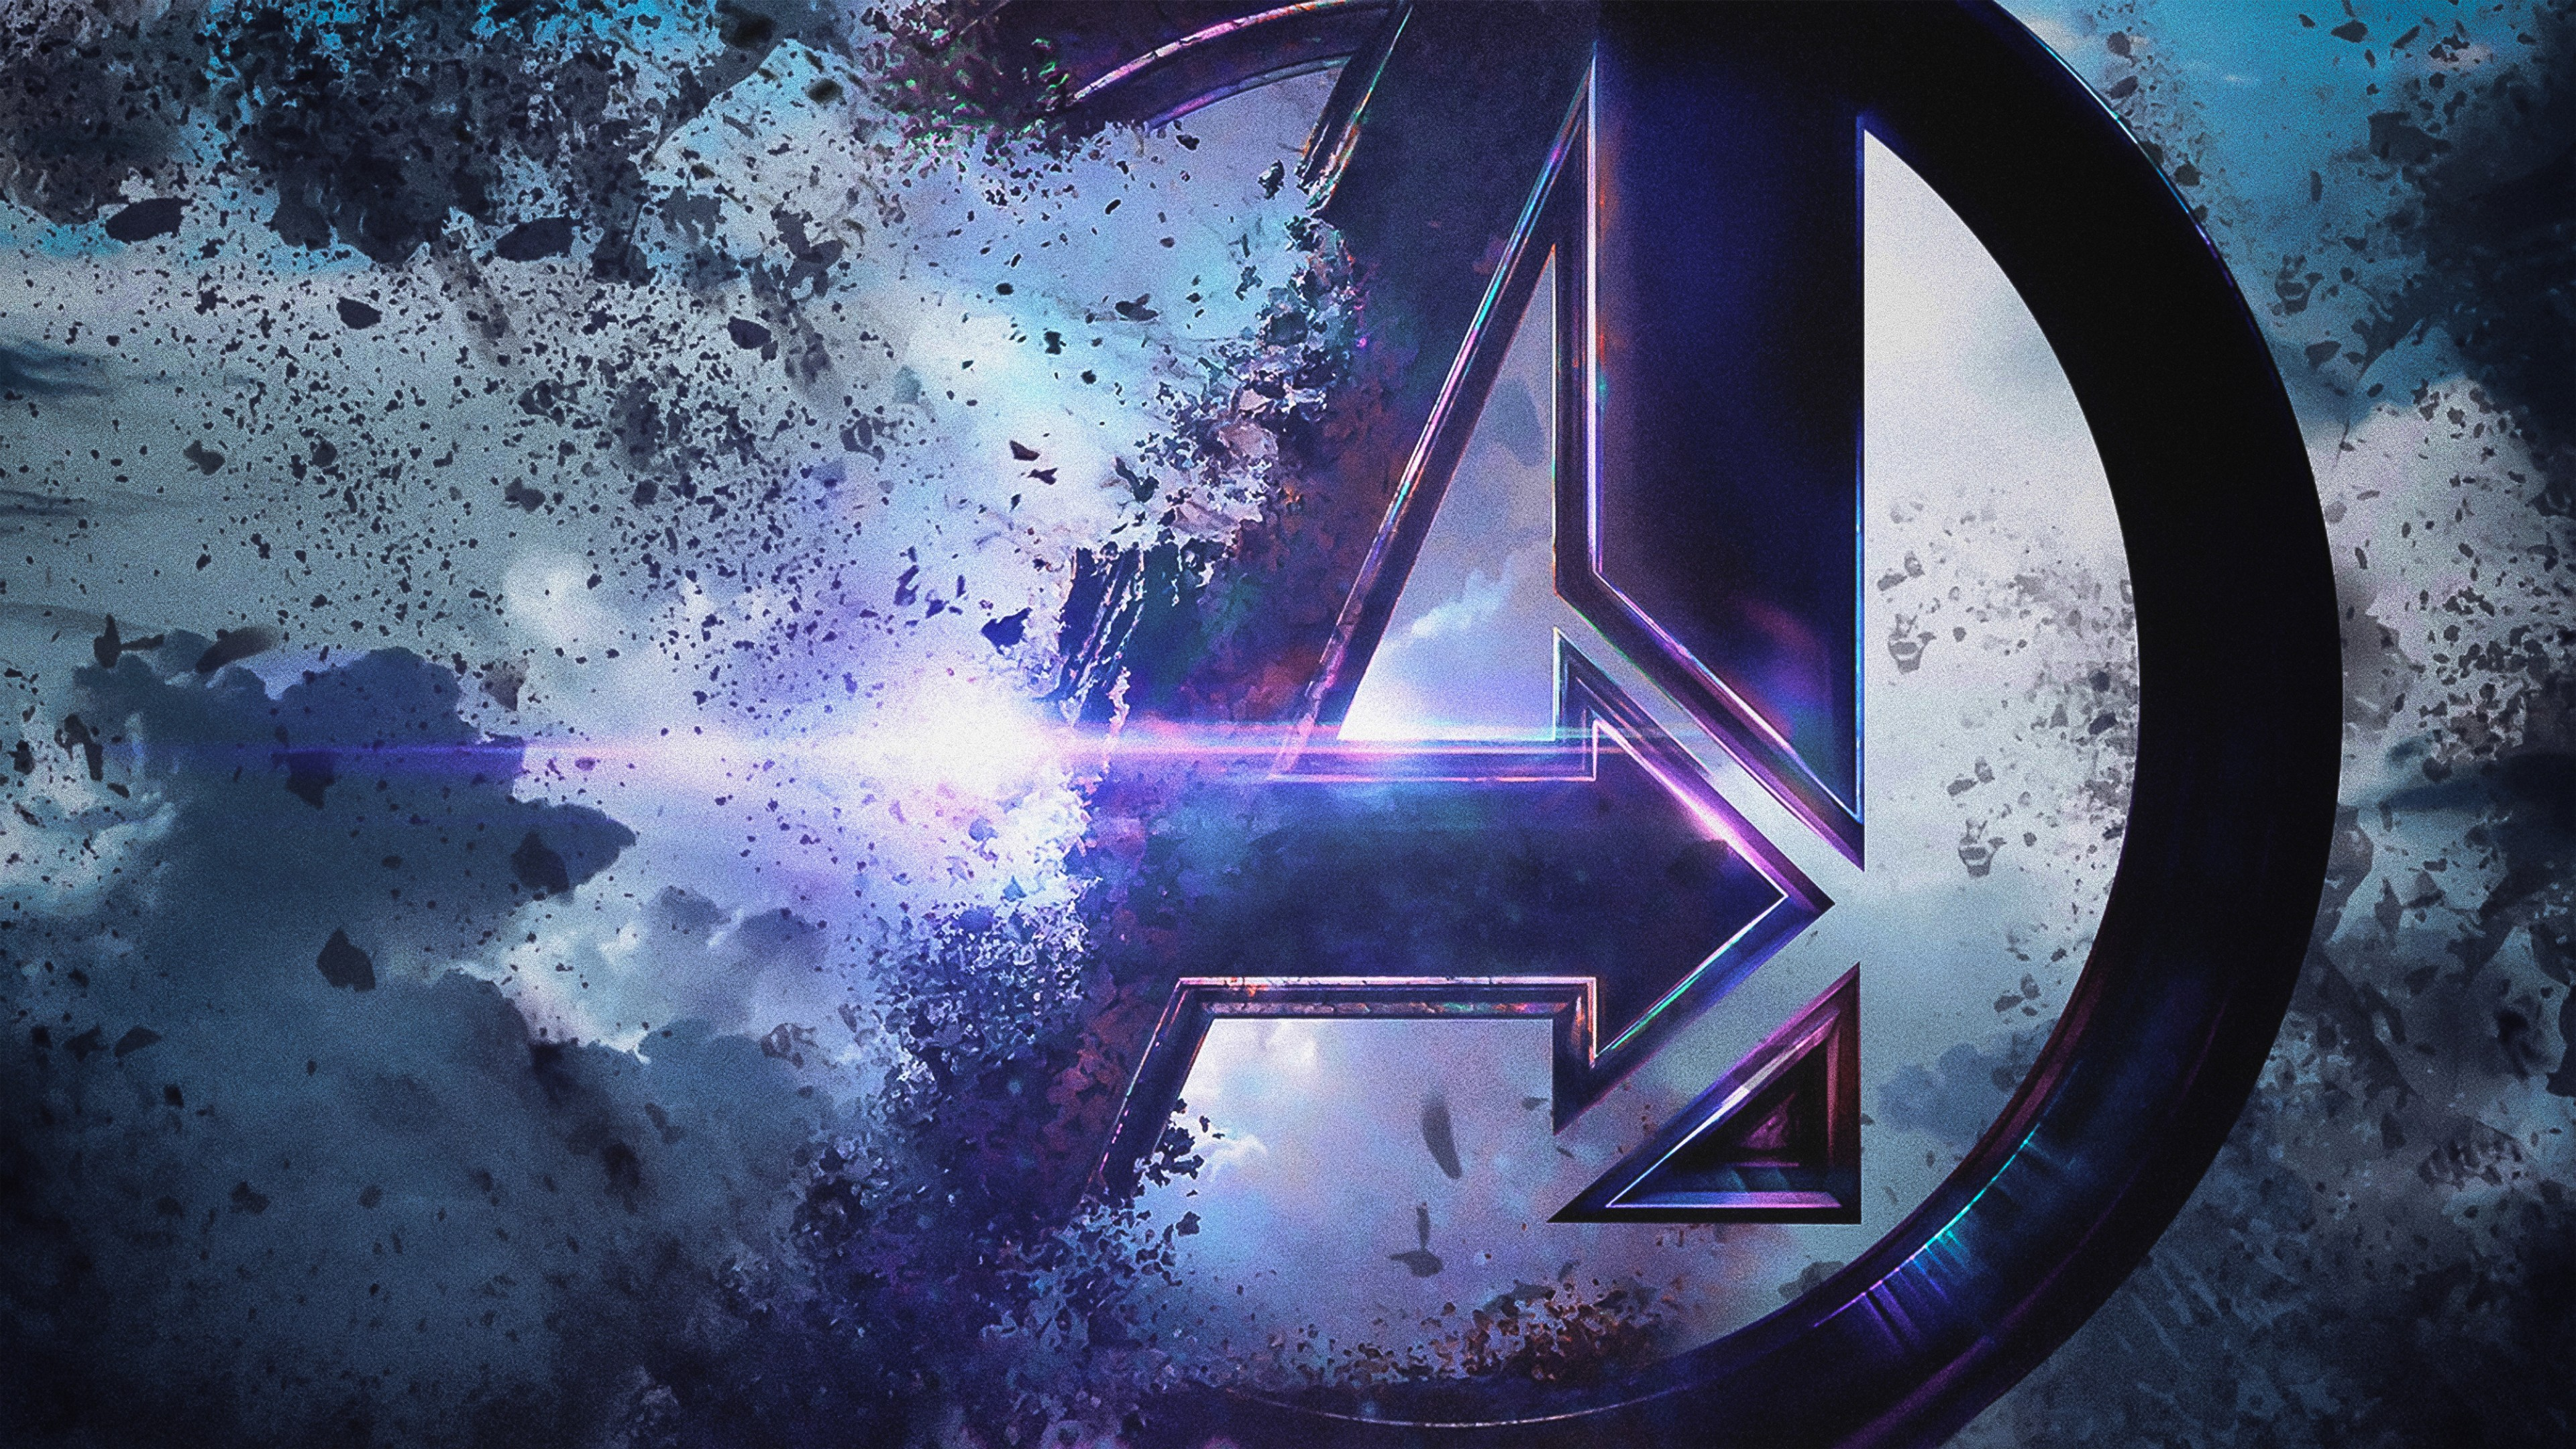 Iphone X Wallpaper Official Download Avengers Endgame 4k Wallpapers Hd Wallpapers